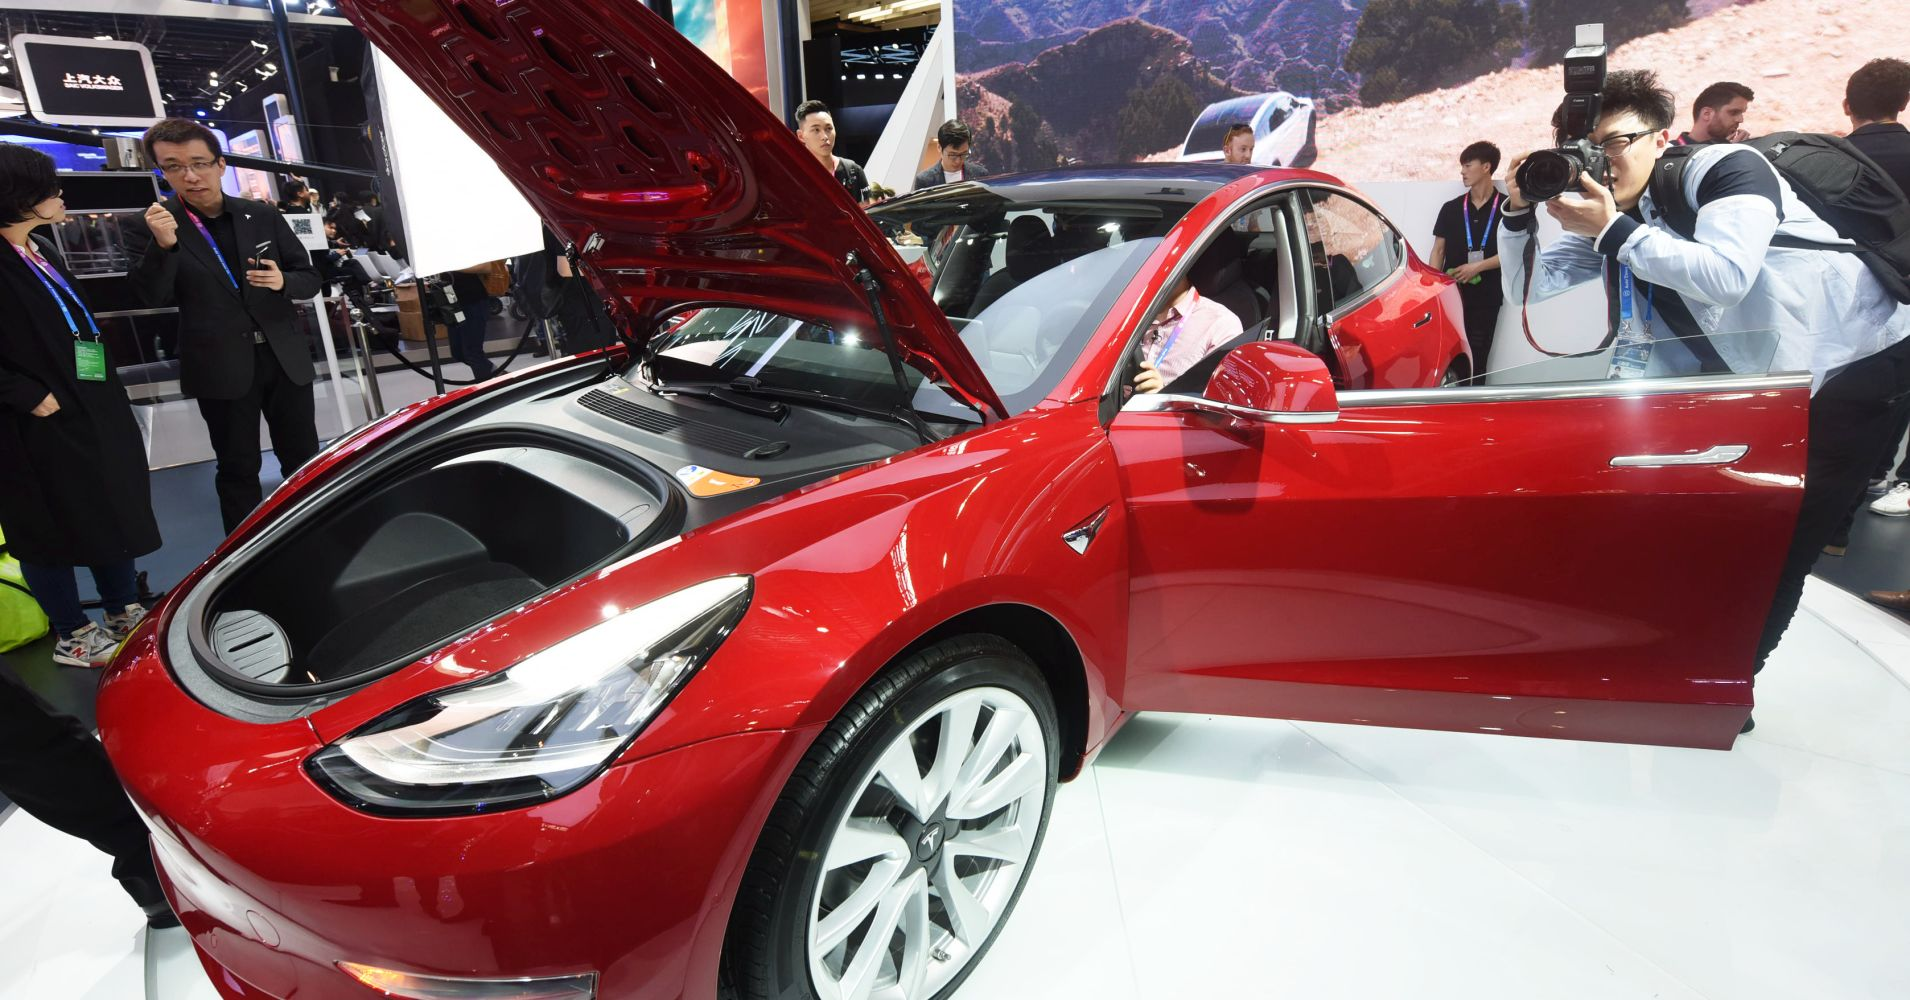 There are big doubts about how Musk will pull off the Tesla buyout, but Morgan Stanley may have found a way